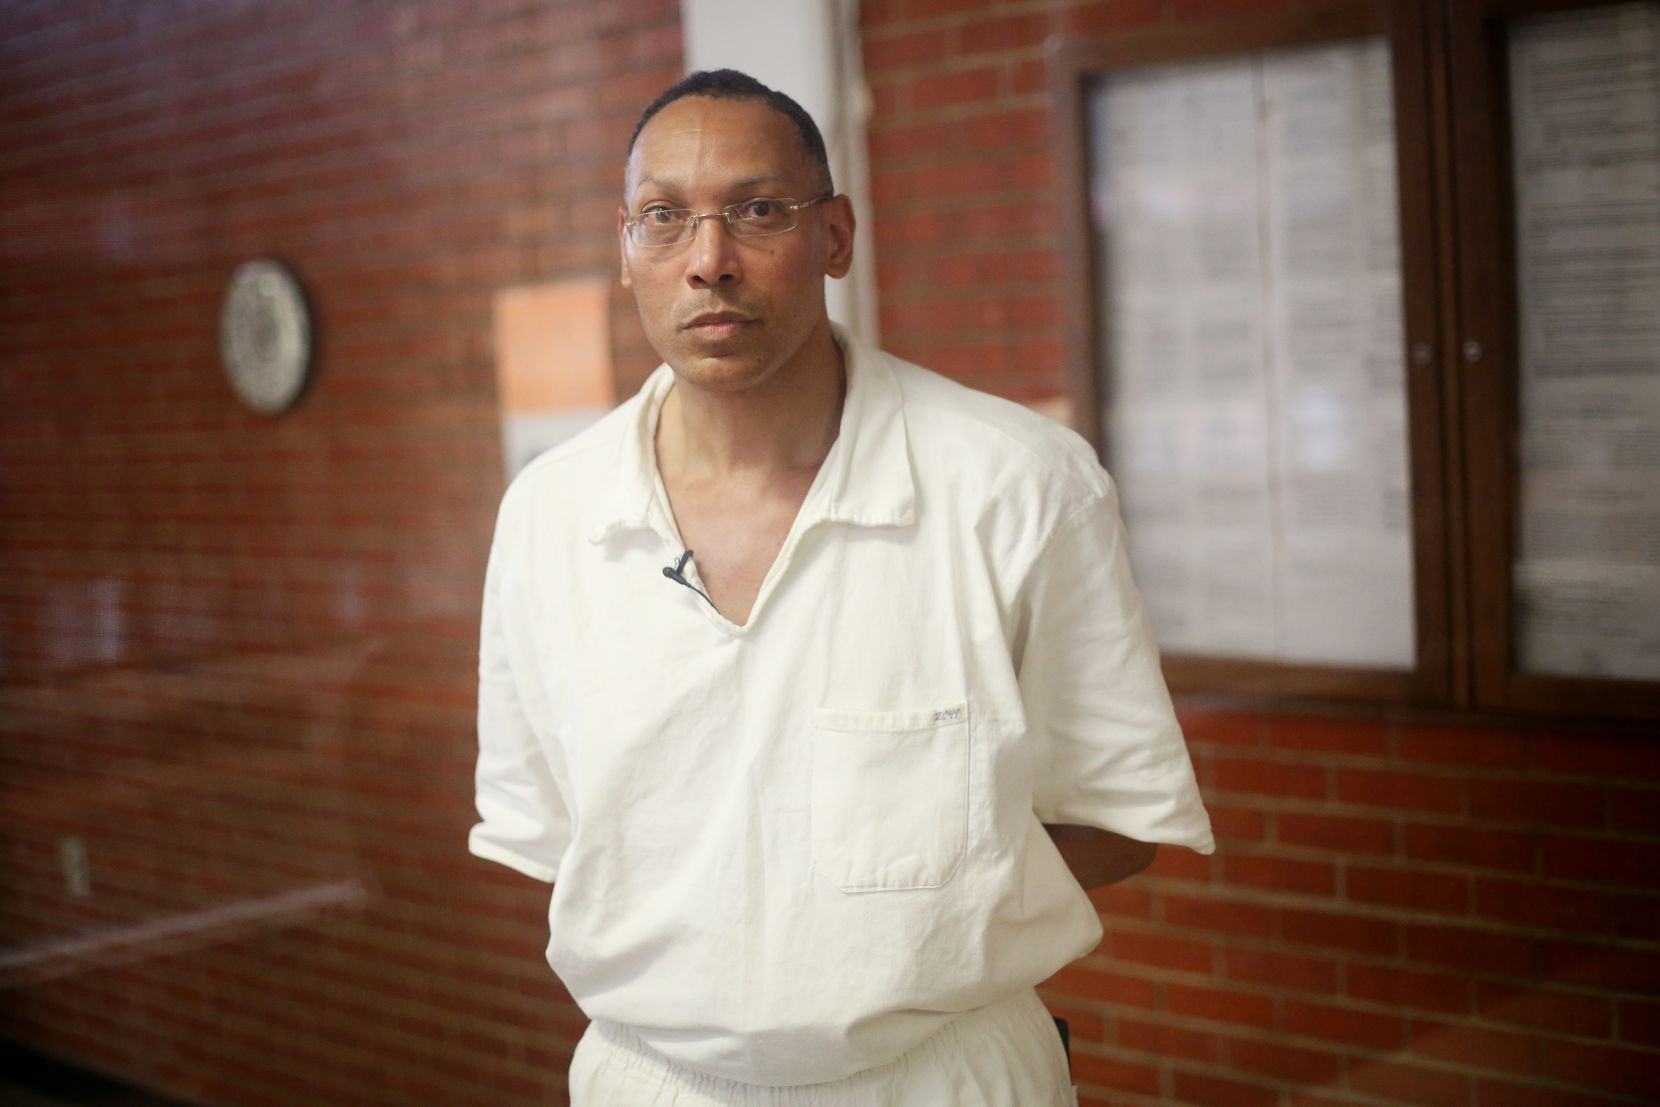 Ben Spencer, who maintains his innocence, is serving a life sentence after being arrested in March 1987 for the robbery and killing of Dallas business owner Jeffrey Young. He was photographed after an interview with The Dallas Morning News reporter Jennifer Emily at the Coffield Unit of TDCJ in Tennessee Colony, Texas, in 2017.